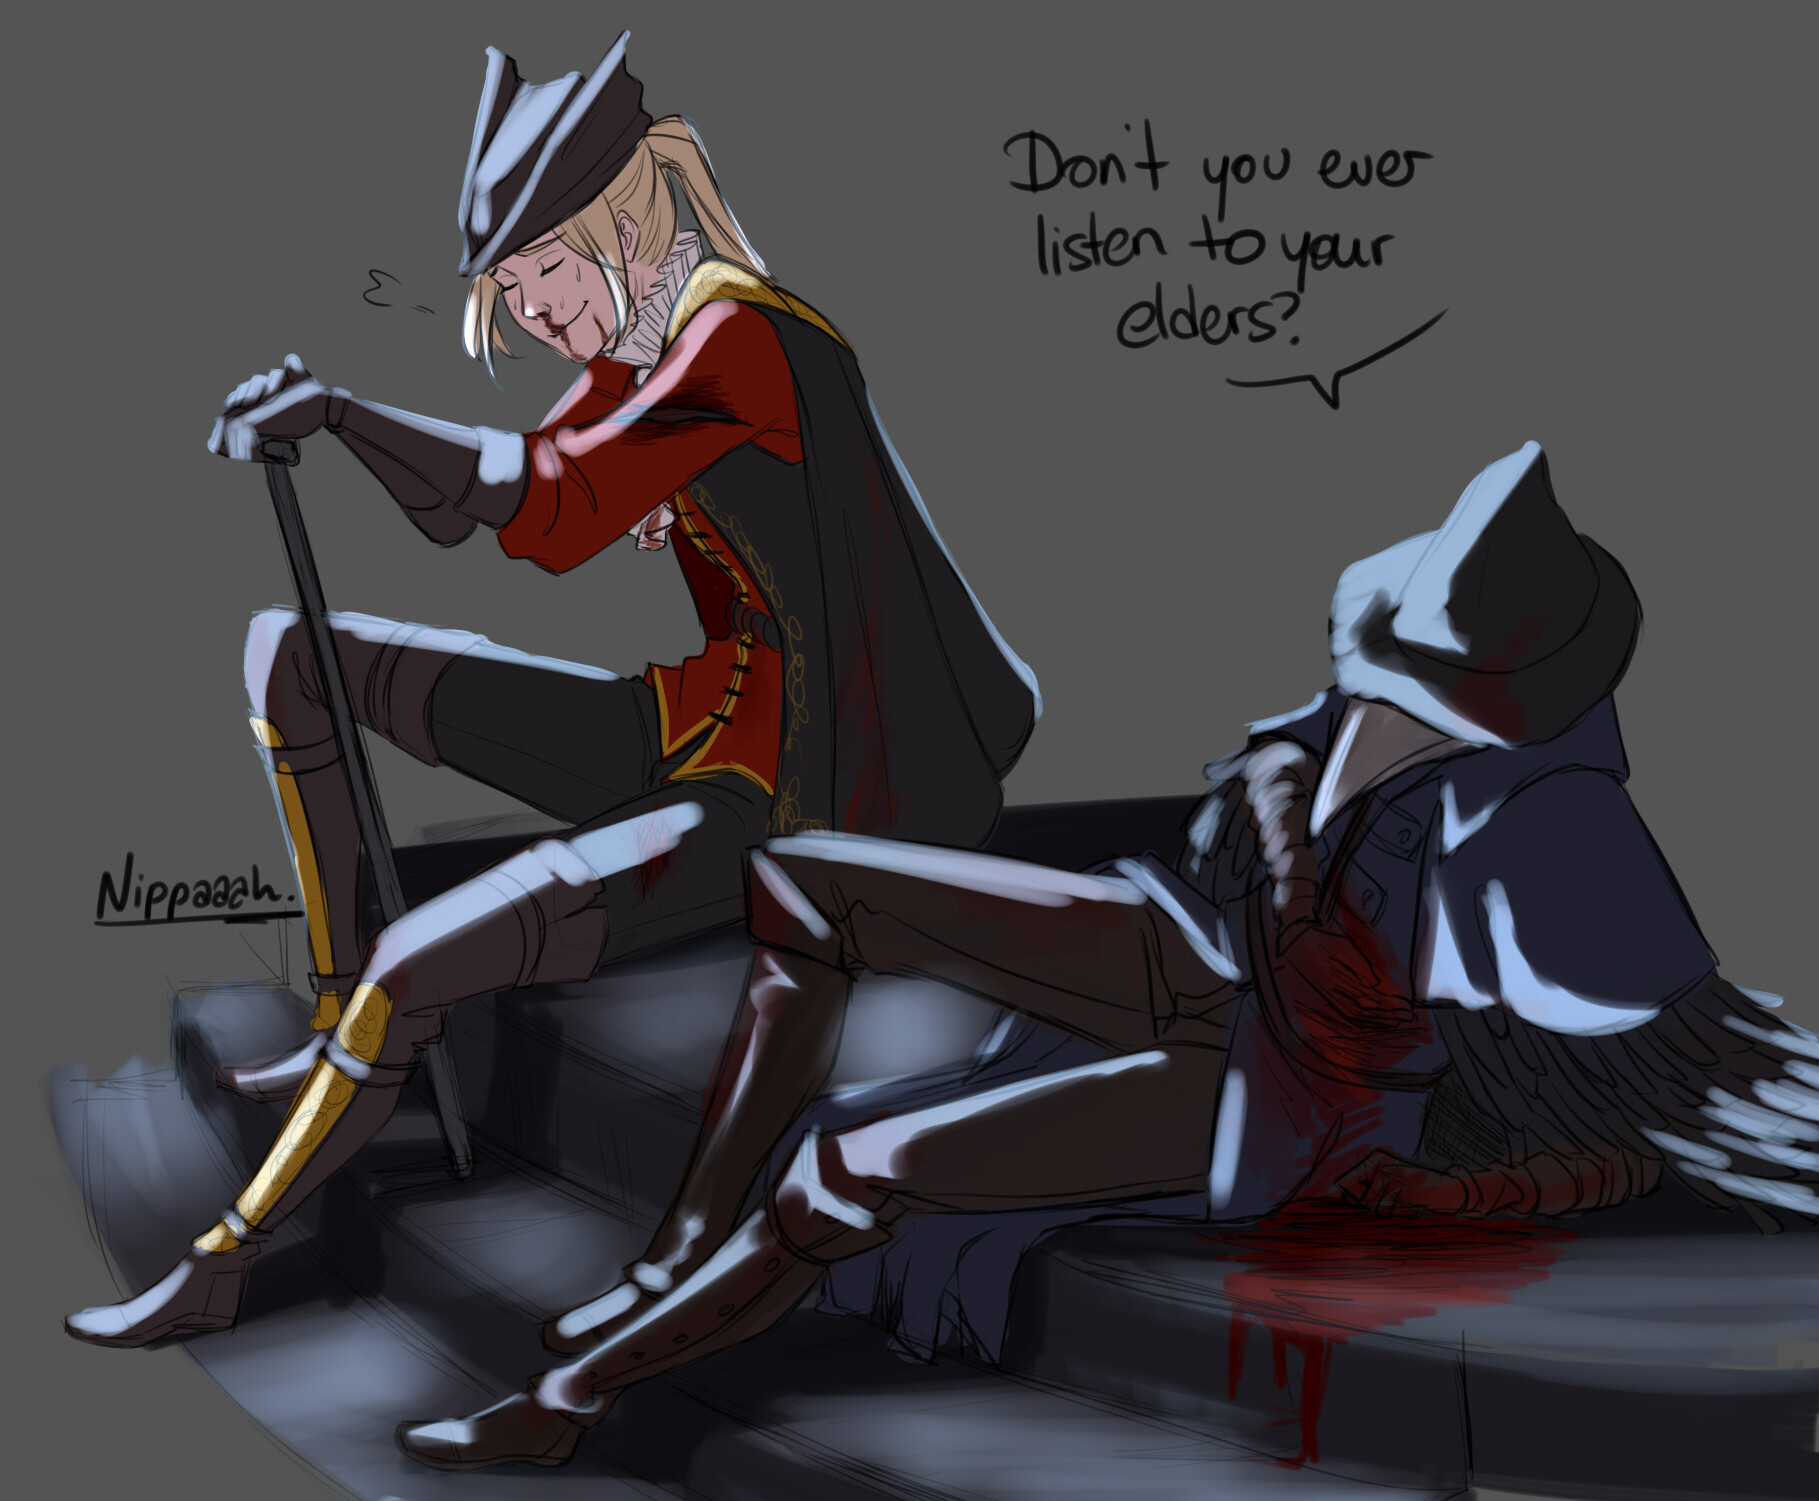 In Bloodborne, taking a breather with Eileen